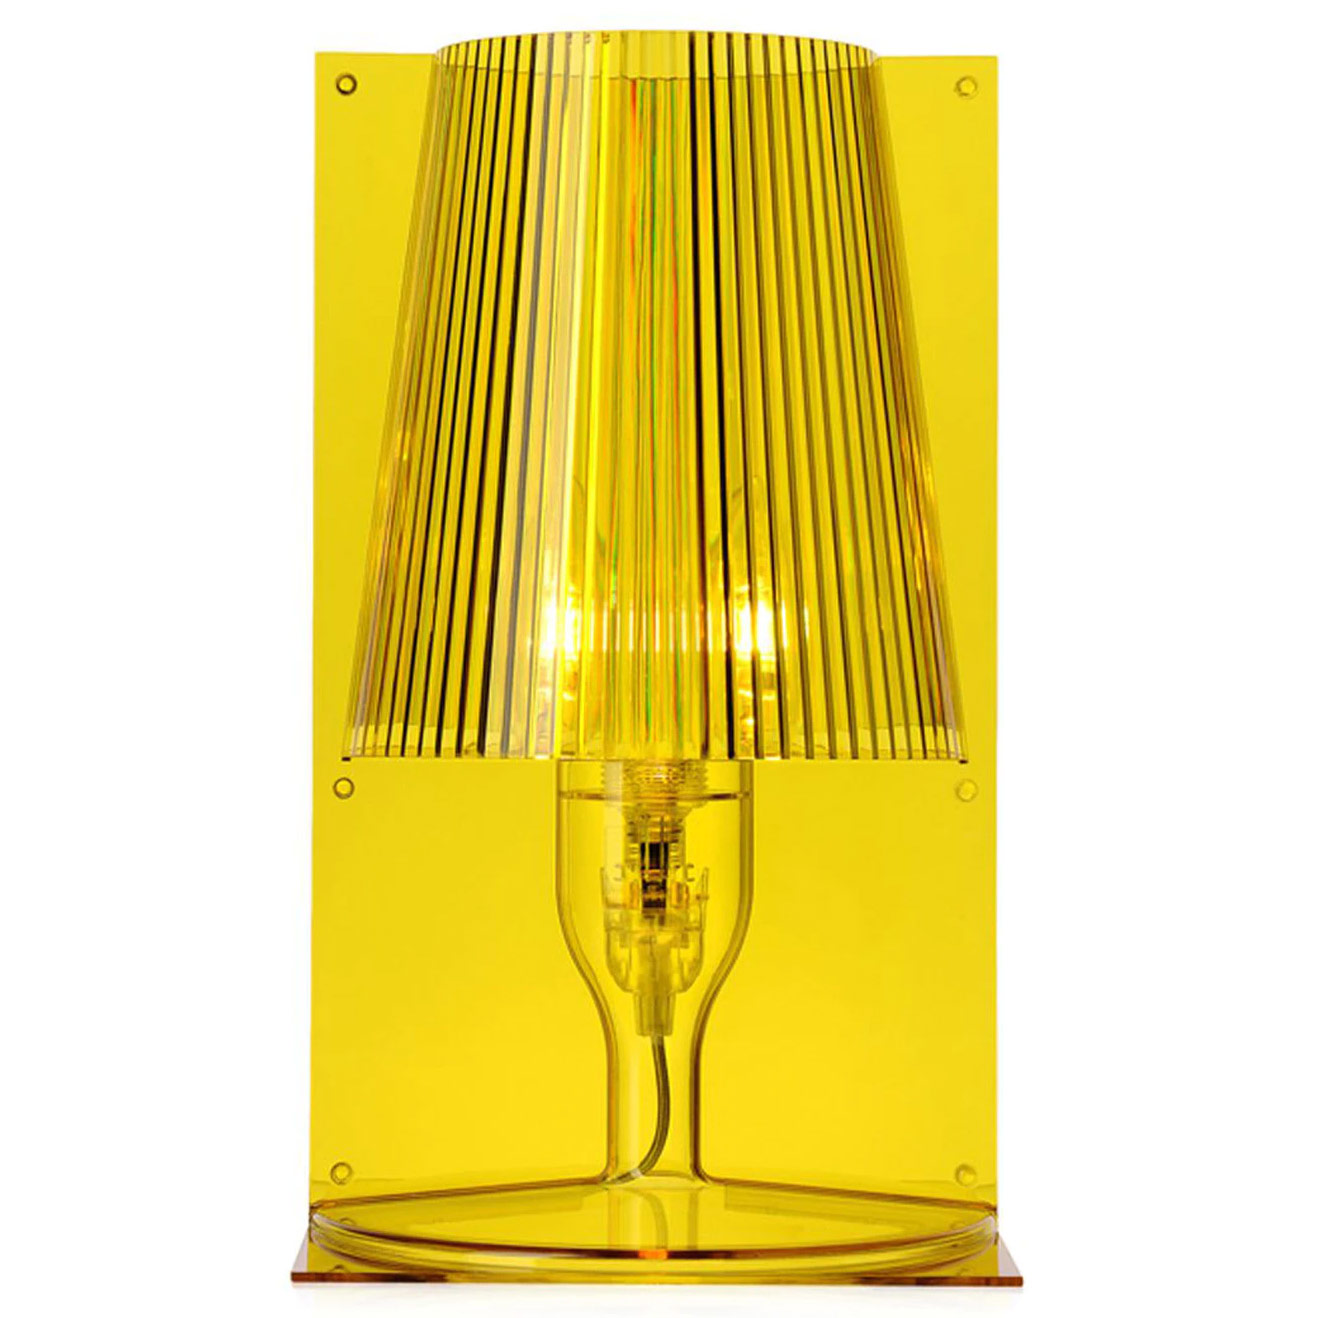 Lamp Kartell Take Table Lamp By Kartell U9050 Q6